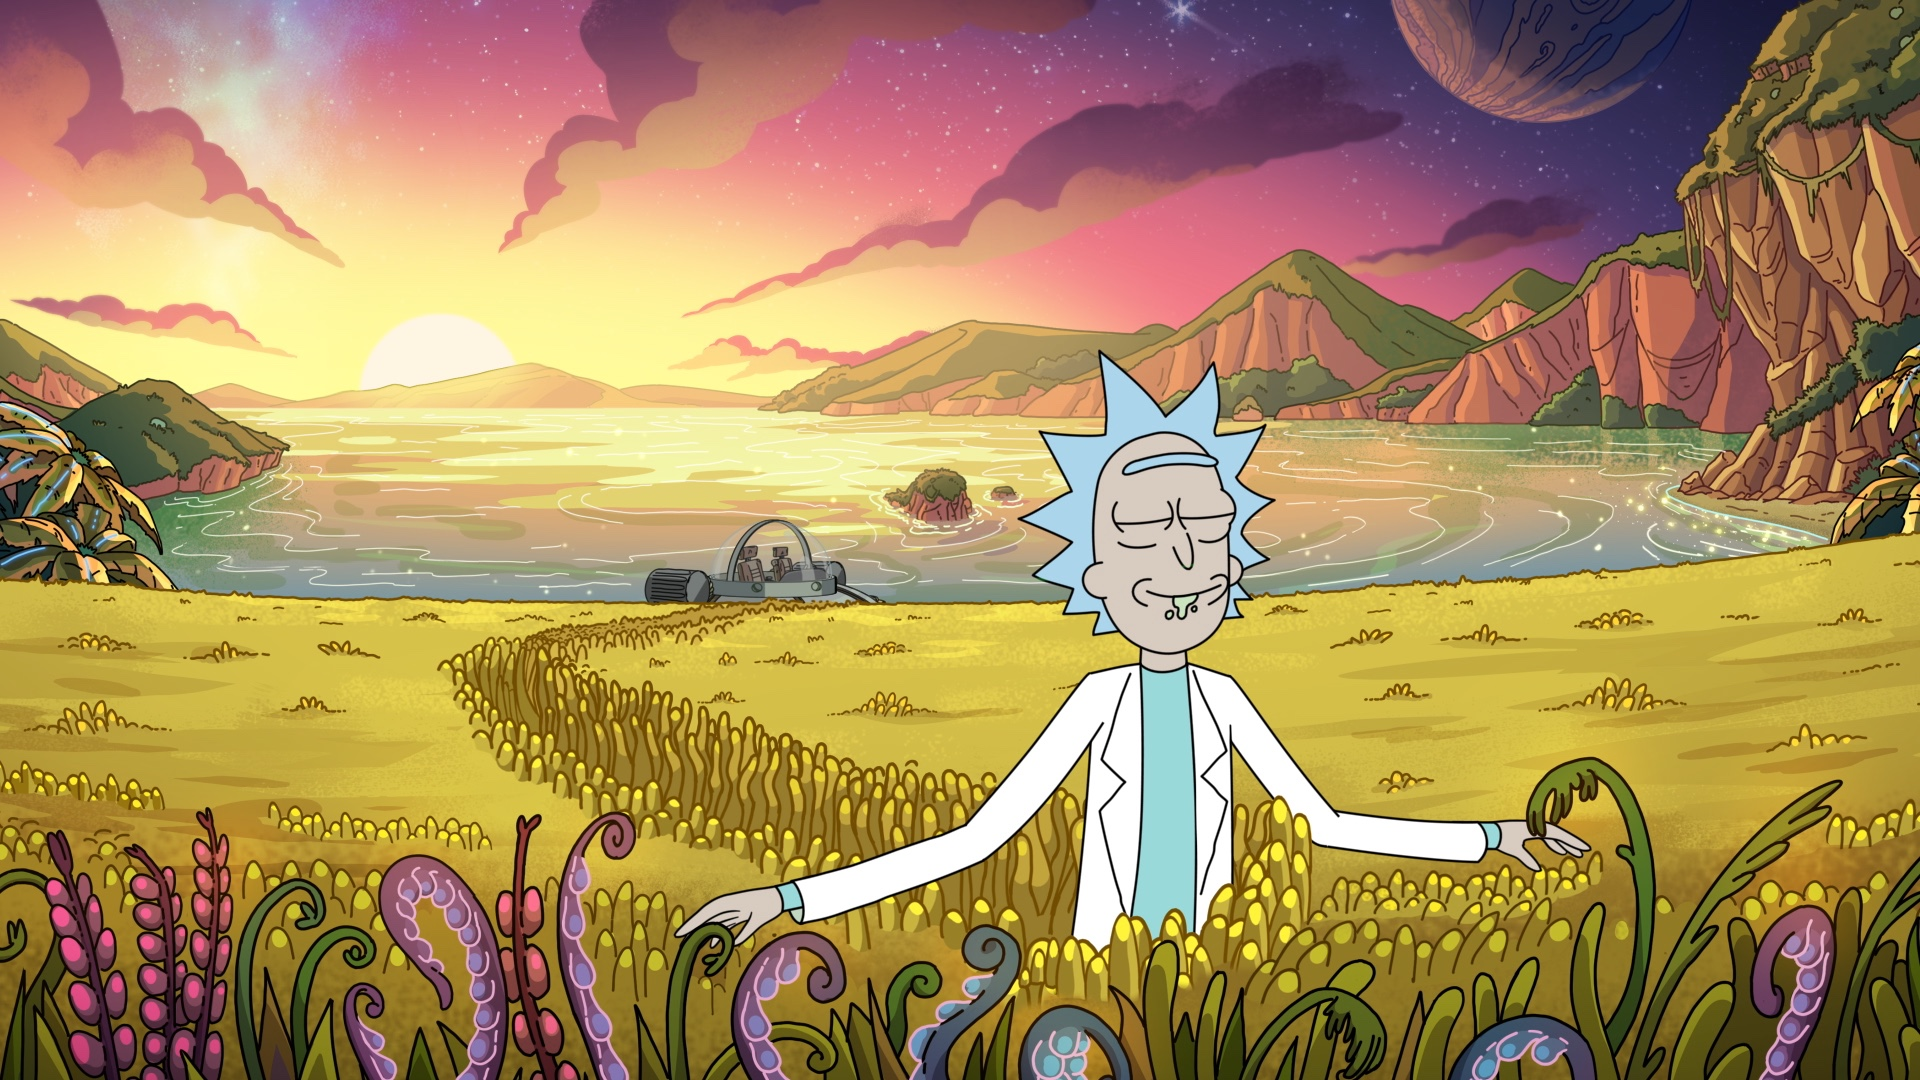 Rick And Morty Season 4 Episode 2 Review Old Man And The